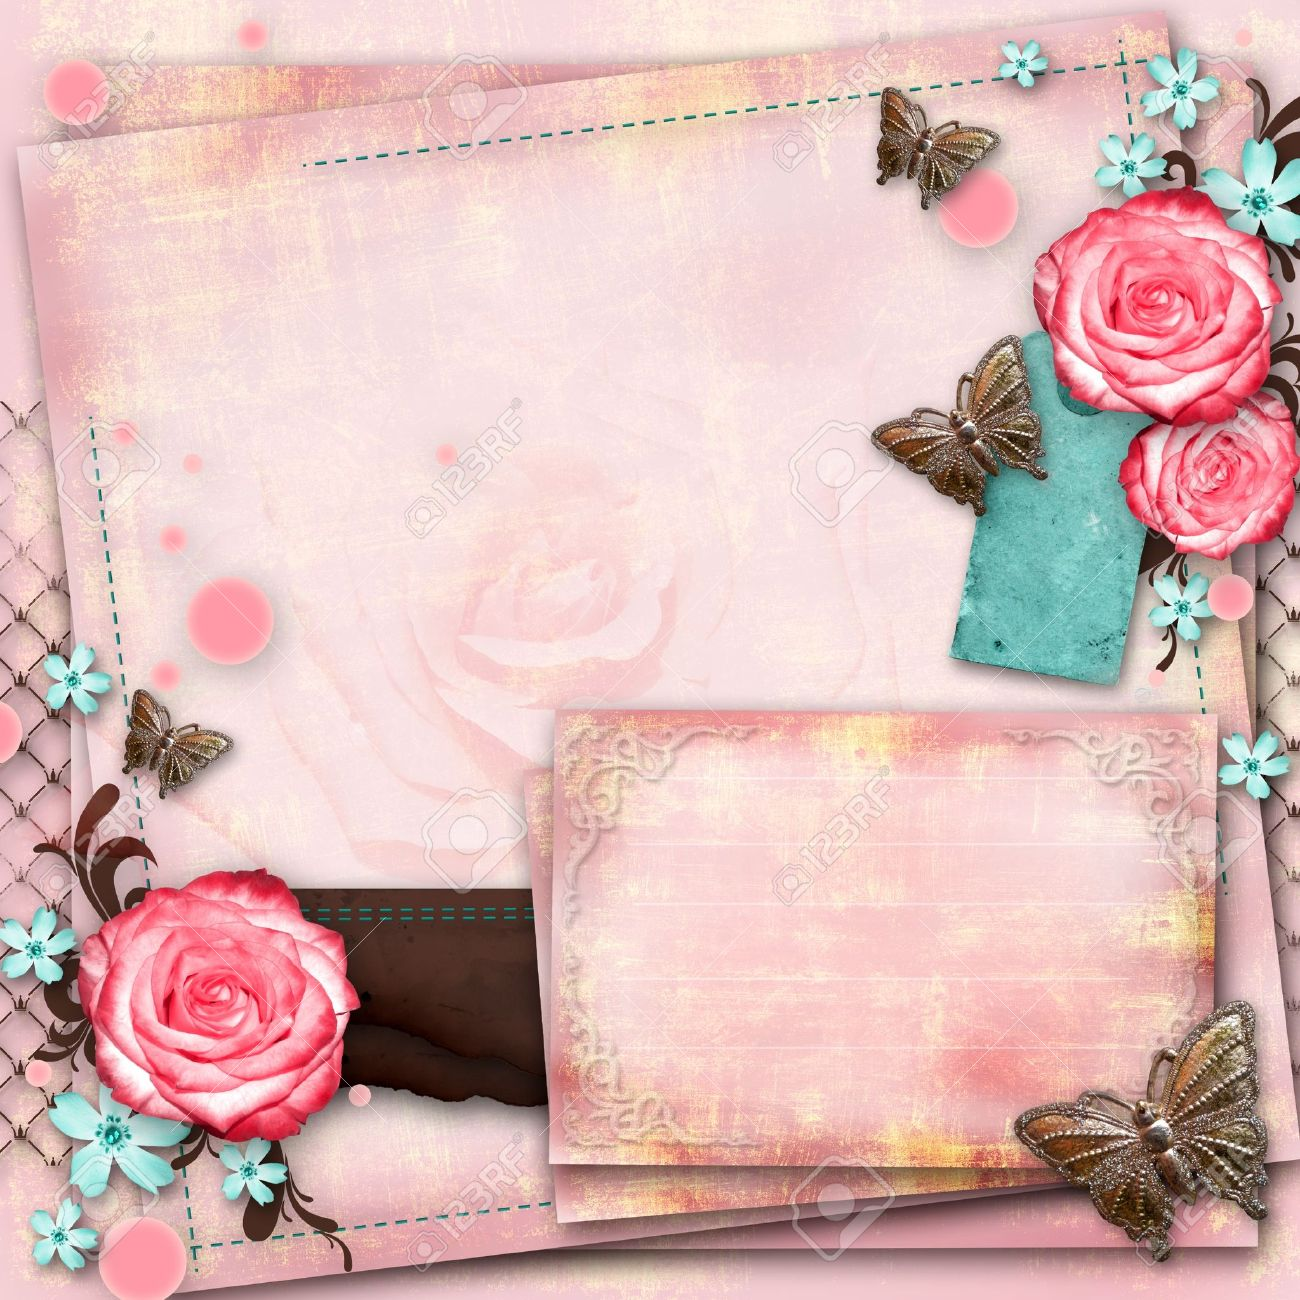 Greeting card with flowers butterfly on pink paper vintage greeting card with flowers butterfly on pink paper vintage background stock photo 20165458 m4hsunfo Images